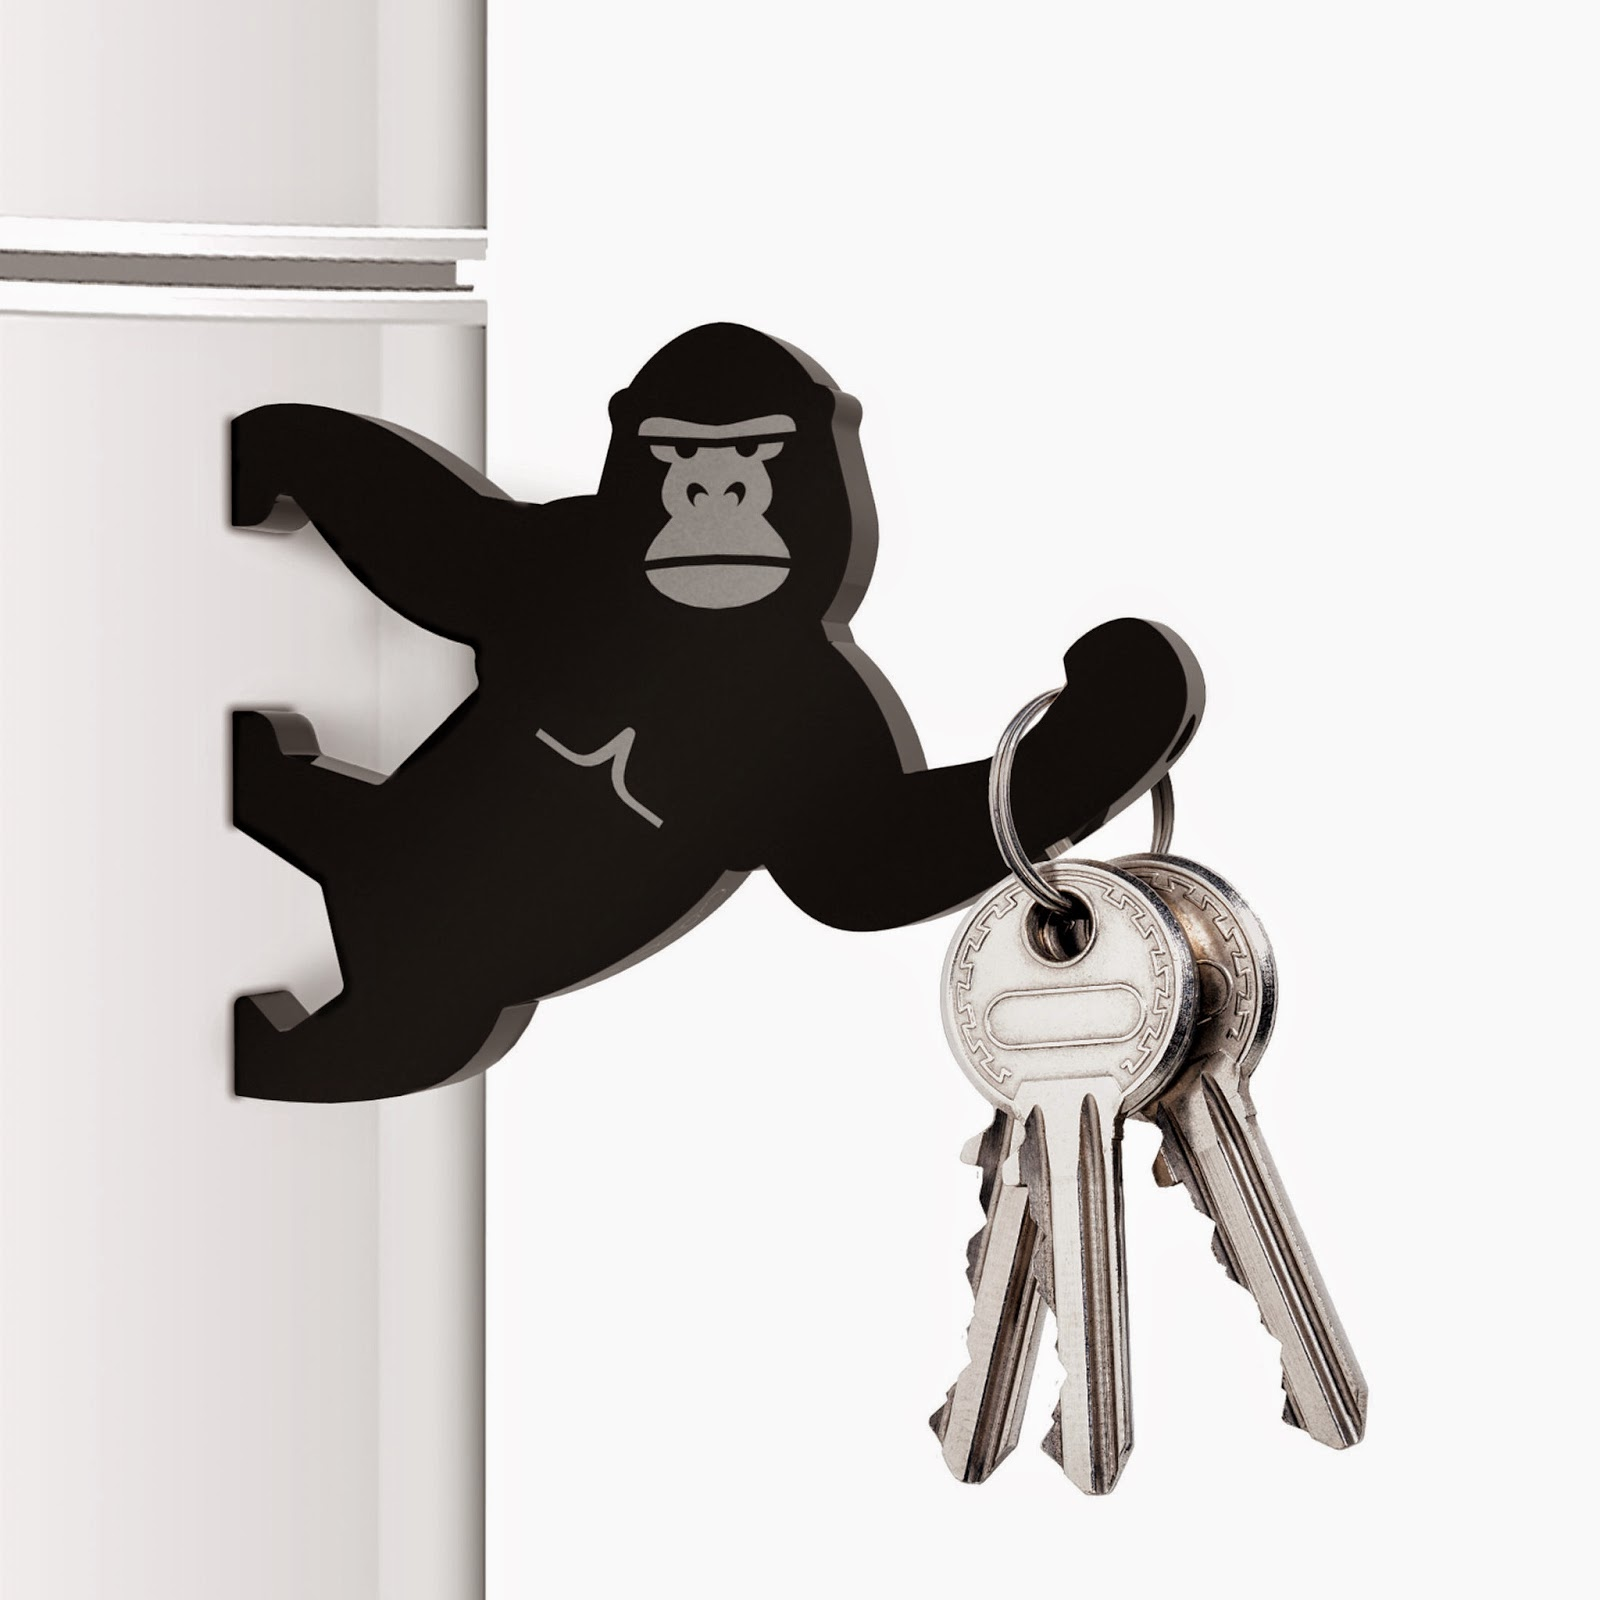 King Kong Key Holder